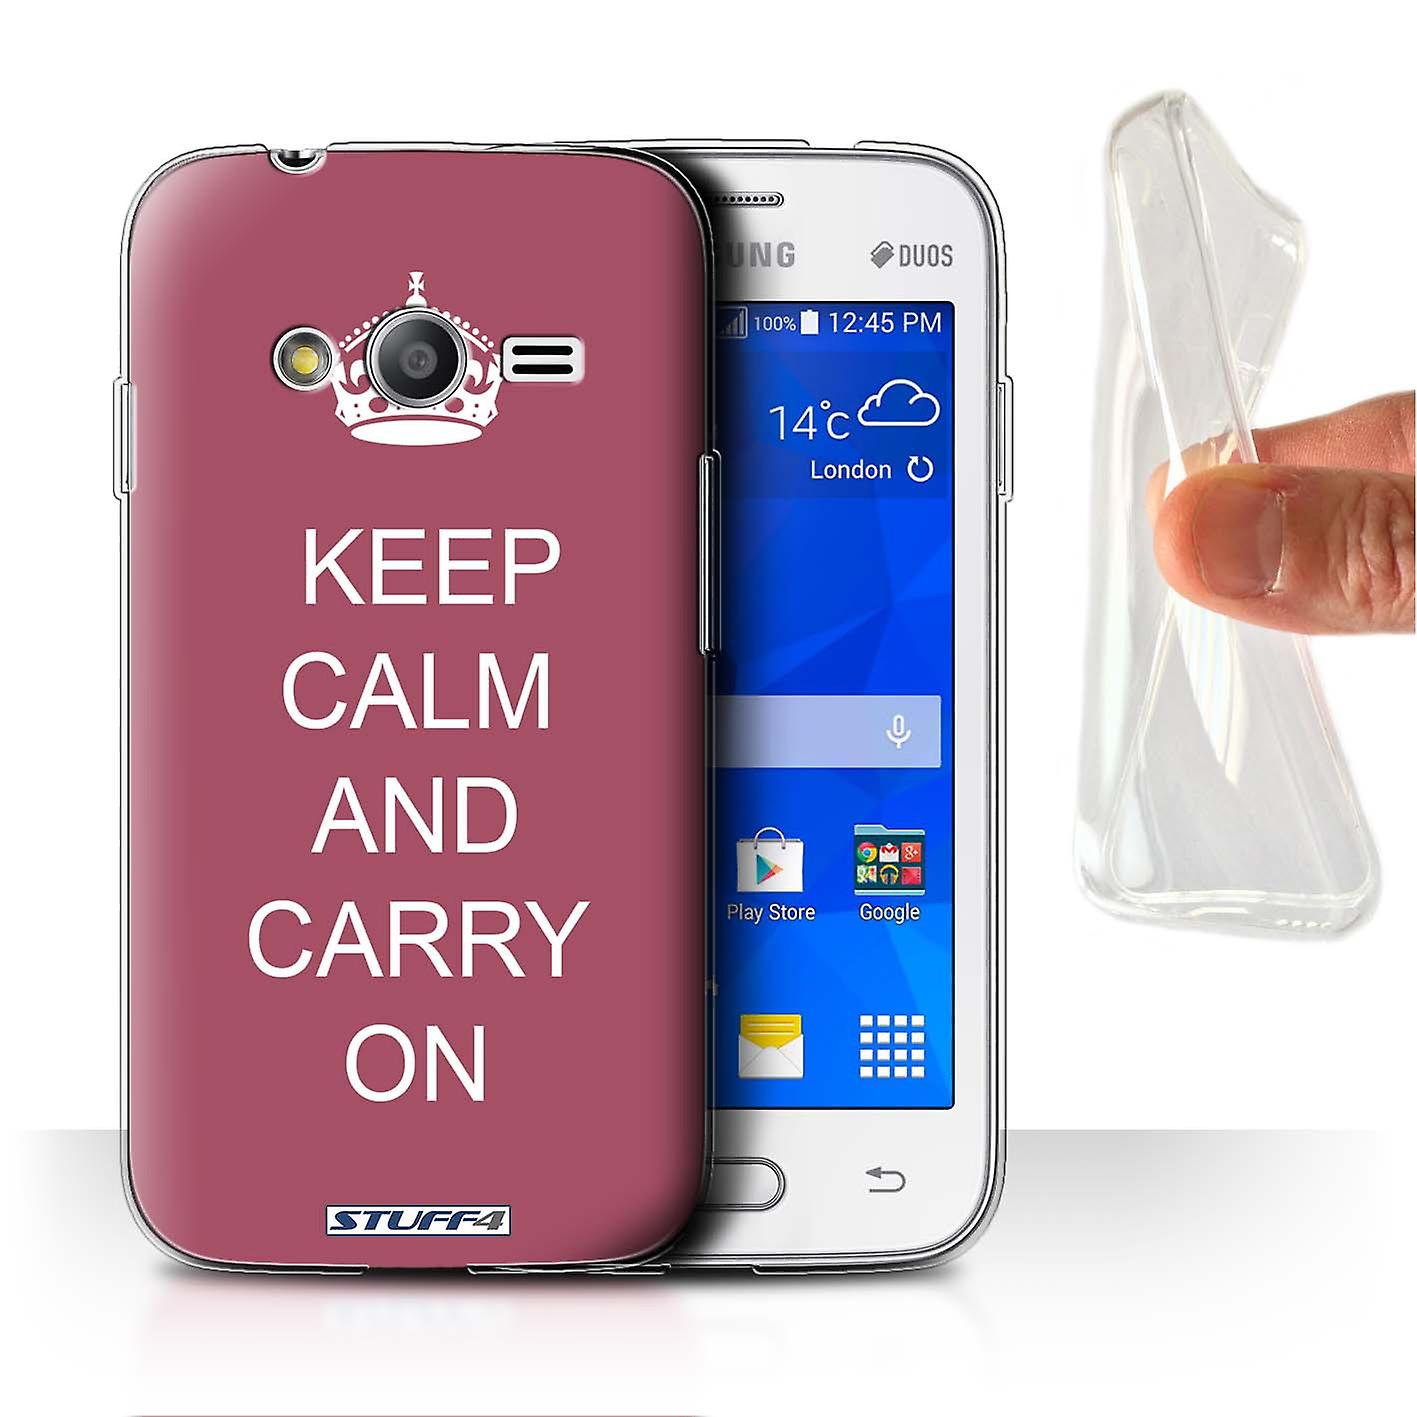 STUFF4 Gel/TPU Case/Cover for Samsung Galaxy S Duos 3/G313/Carry On/Maroon/Keep Calm Stuff4 Housses pour téléphones mobiles